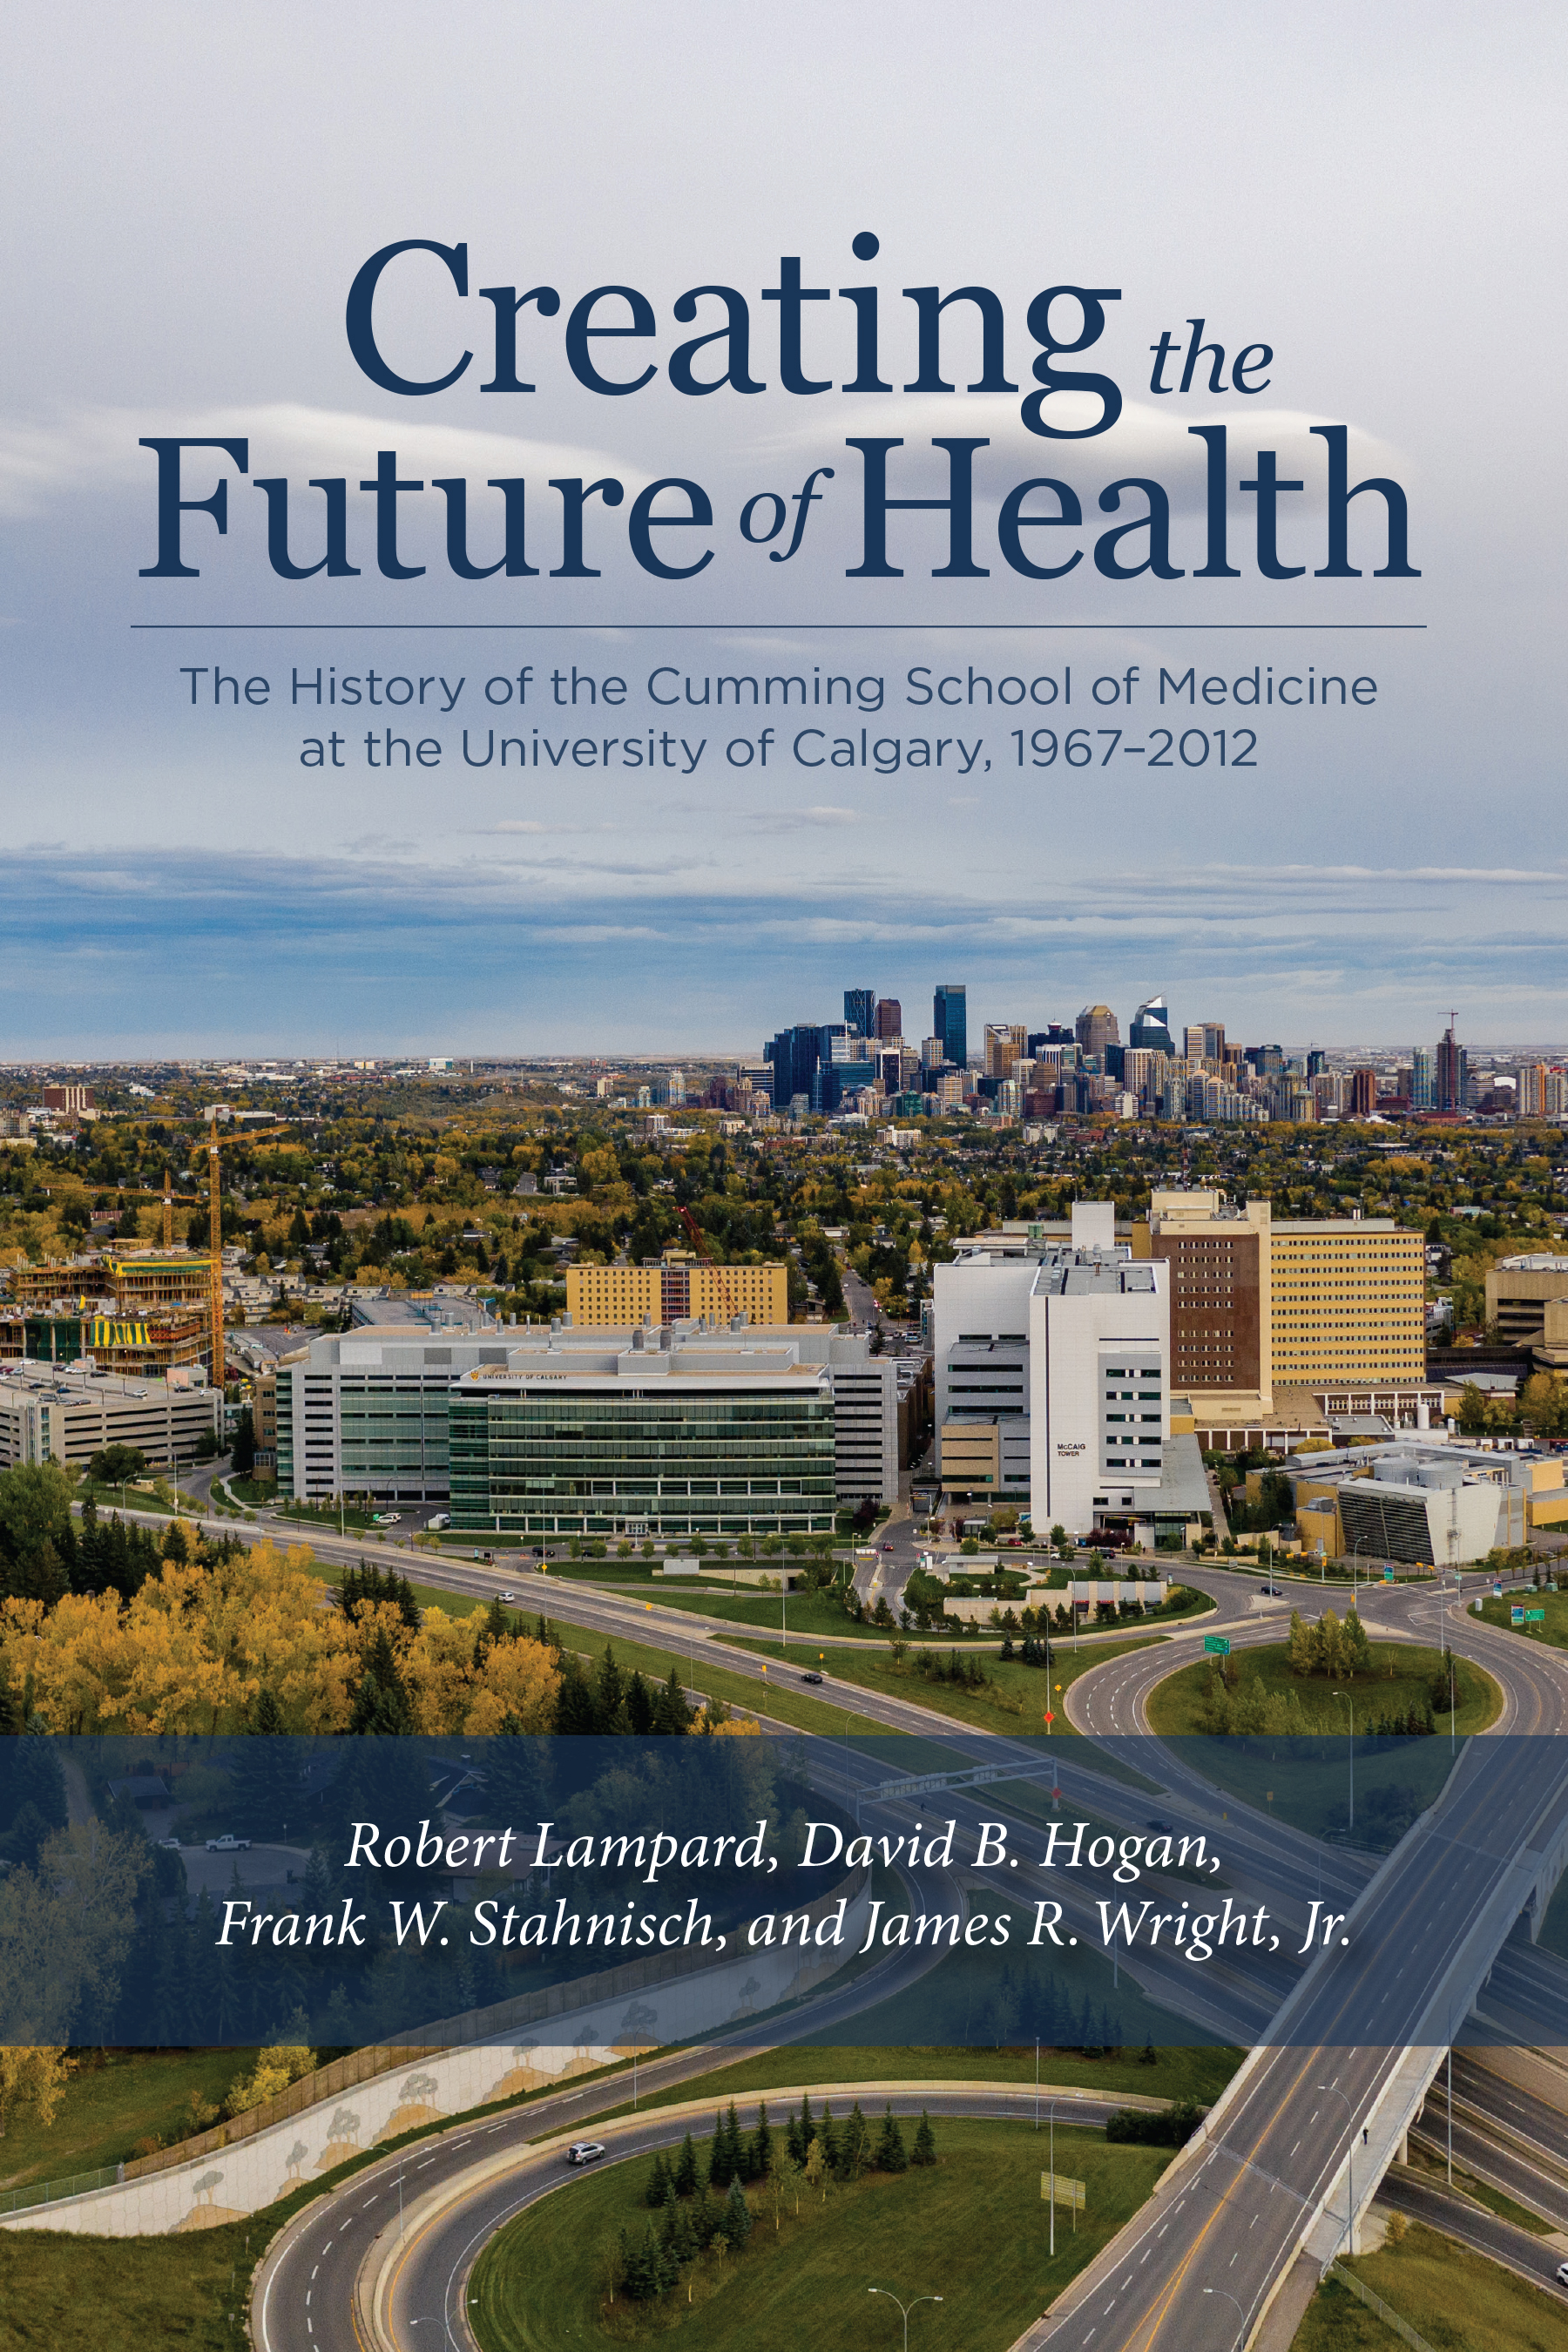 Cover Image for: Creating the Future of Health